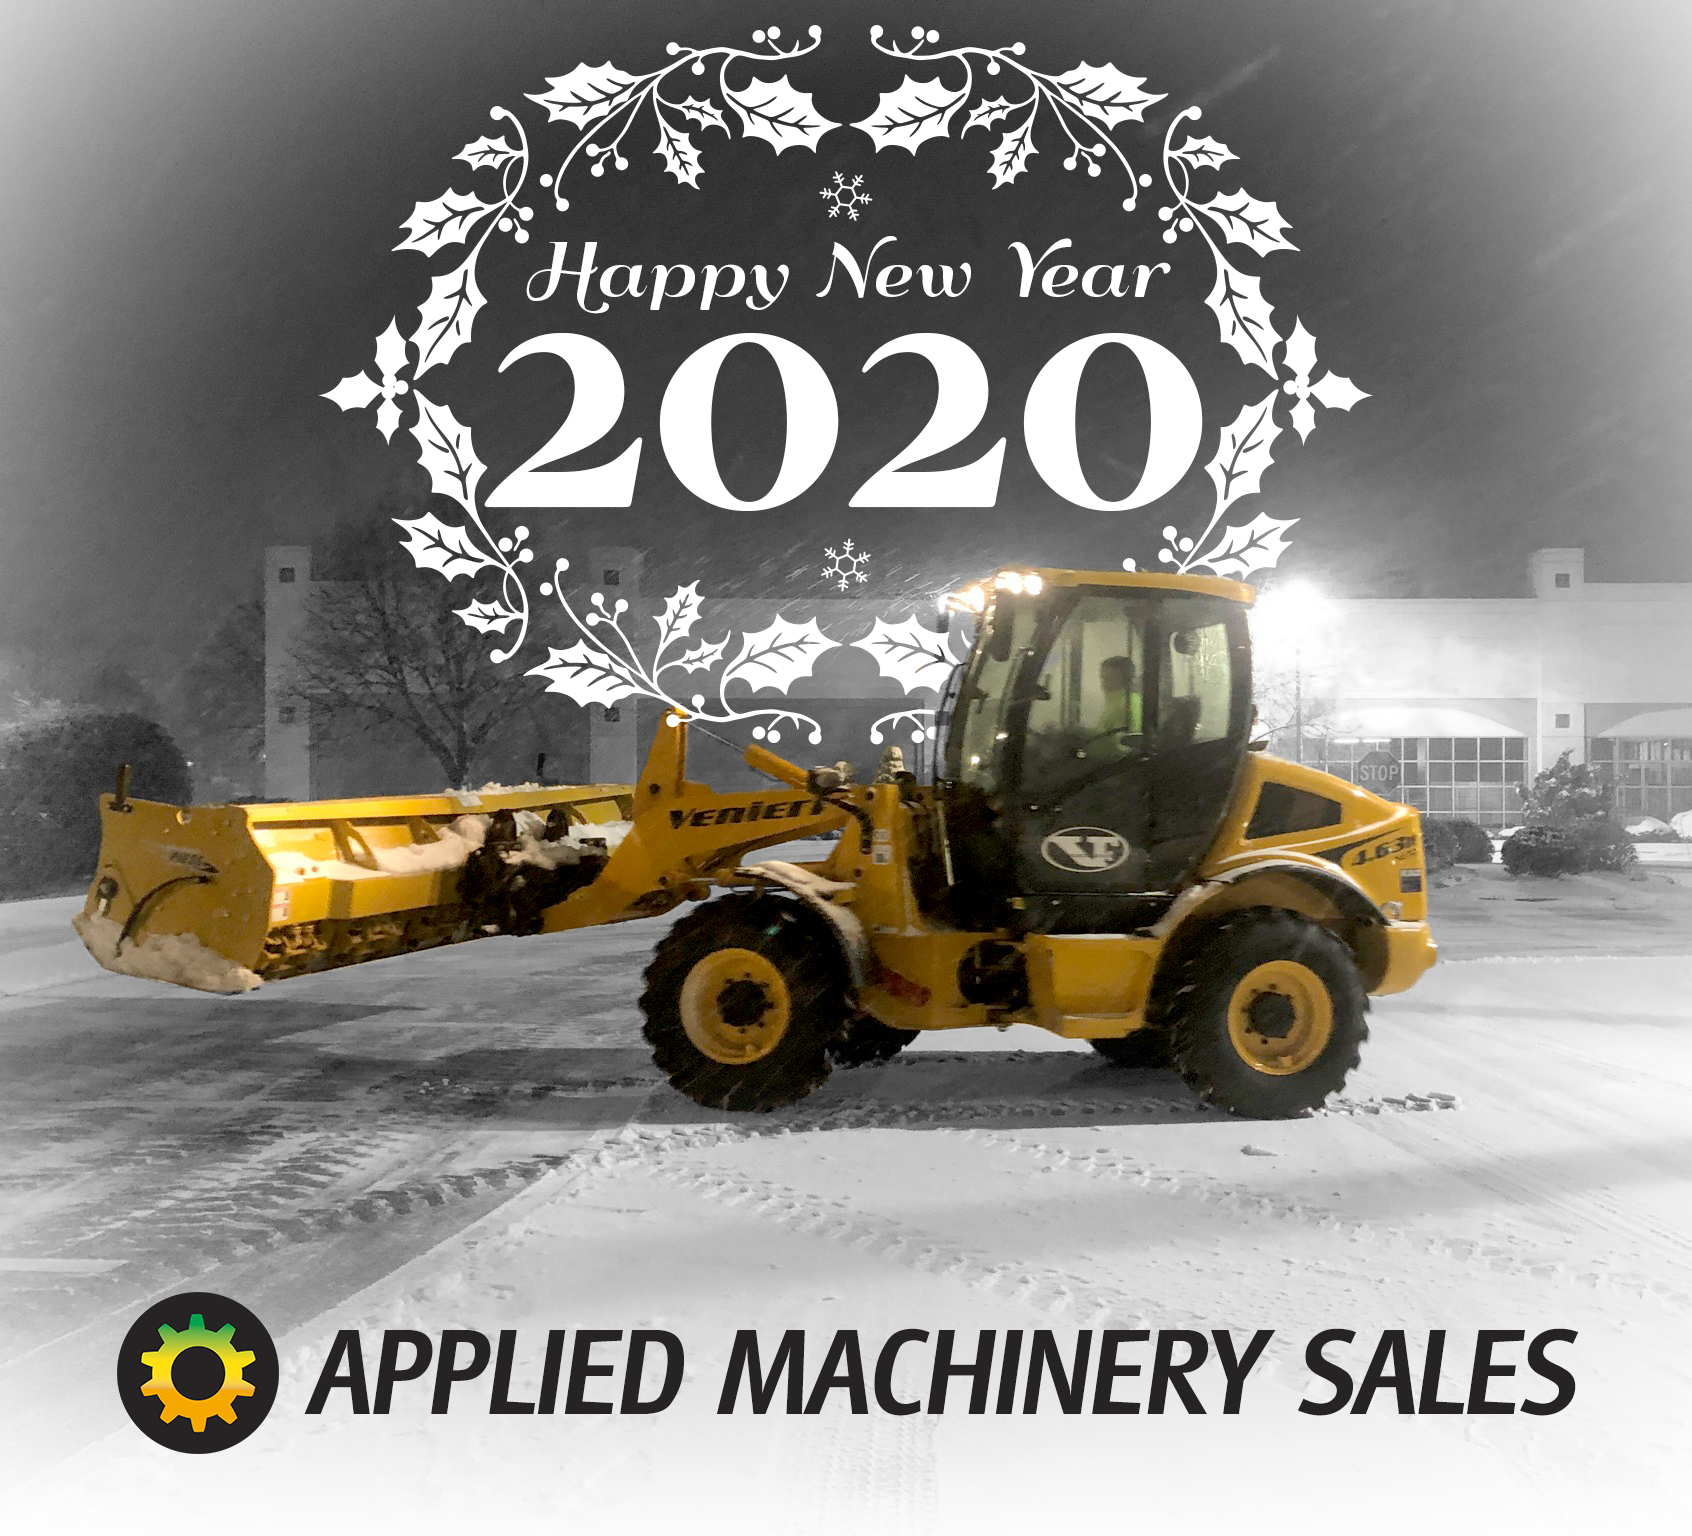 Applied Machinery Sales Venieri New Years 2020